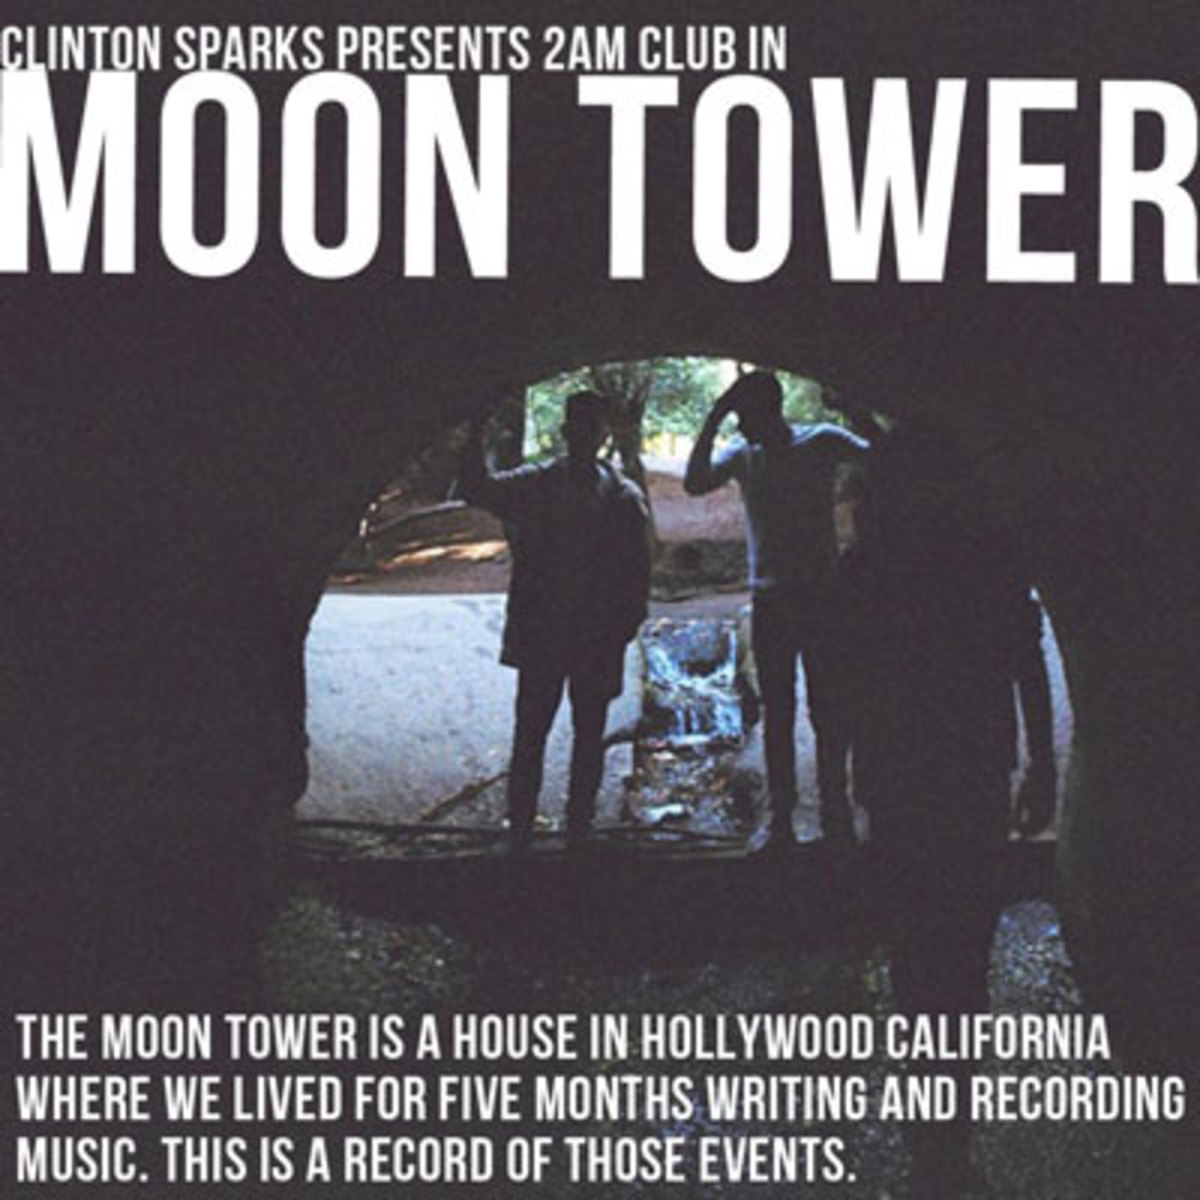 2amclub-moontower.jpg